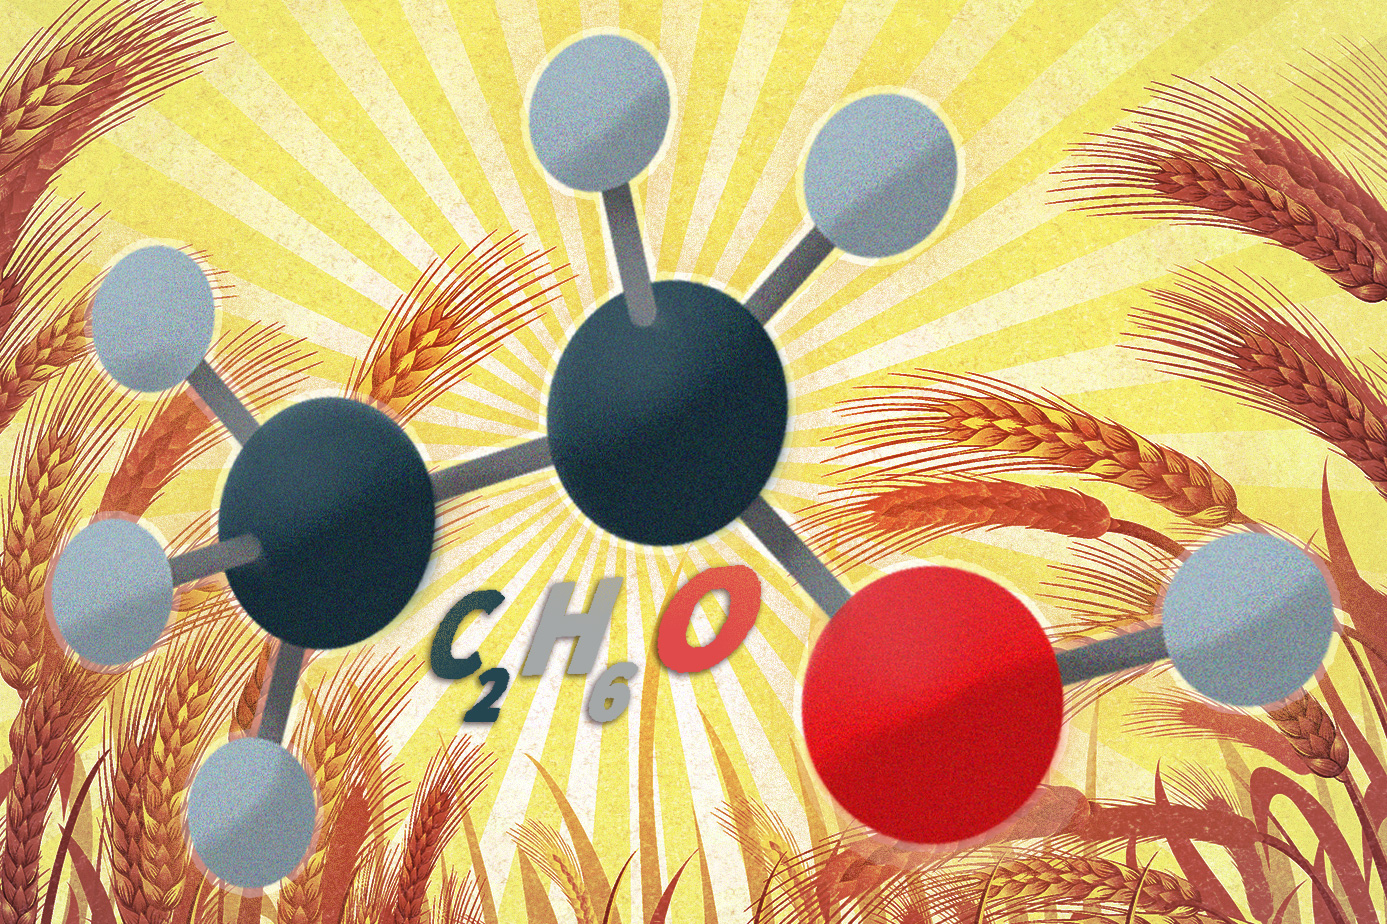 Engineered yeast could expand biofuels' reach